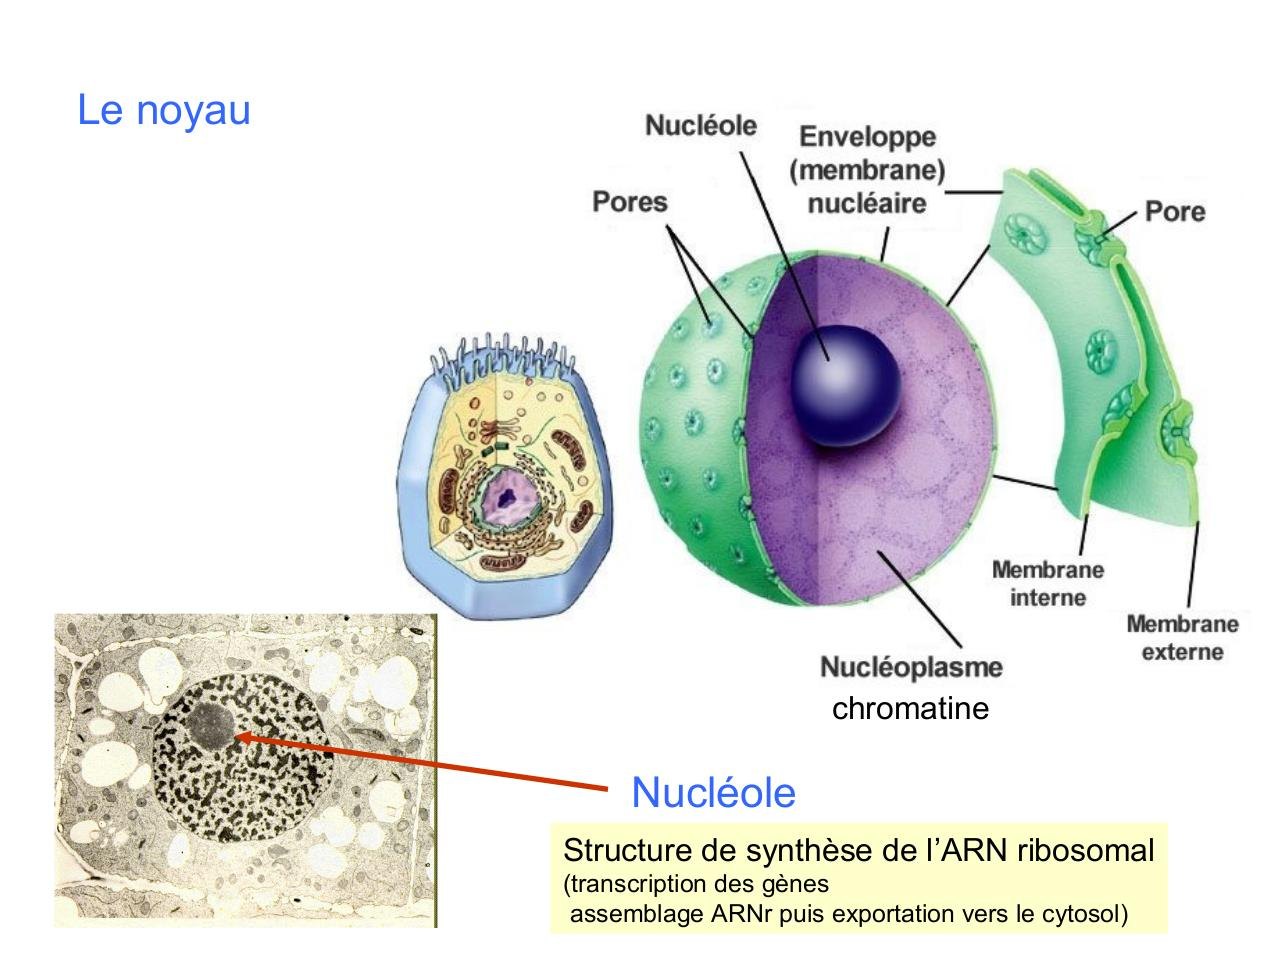 cours IFSI 2 Les organites intracellulaires.pdf - page 3/73